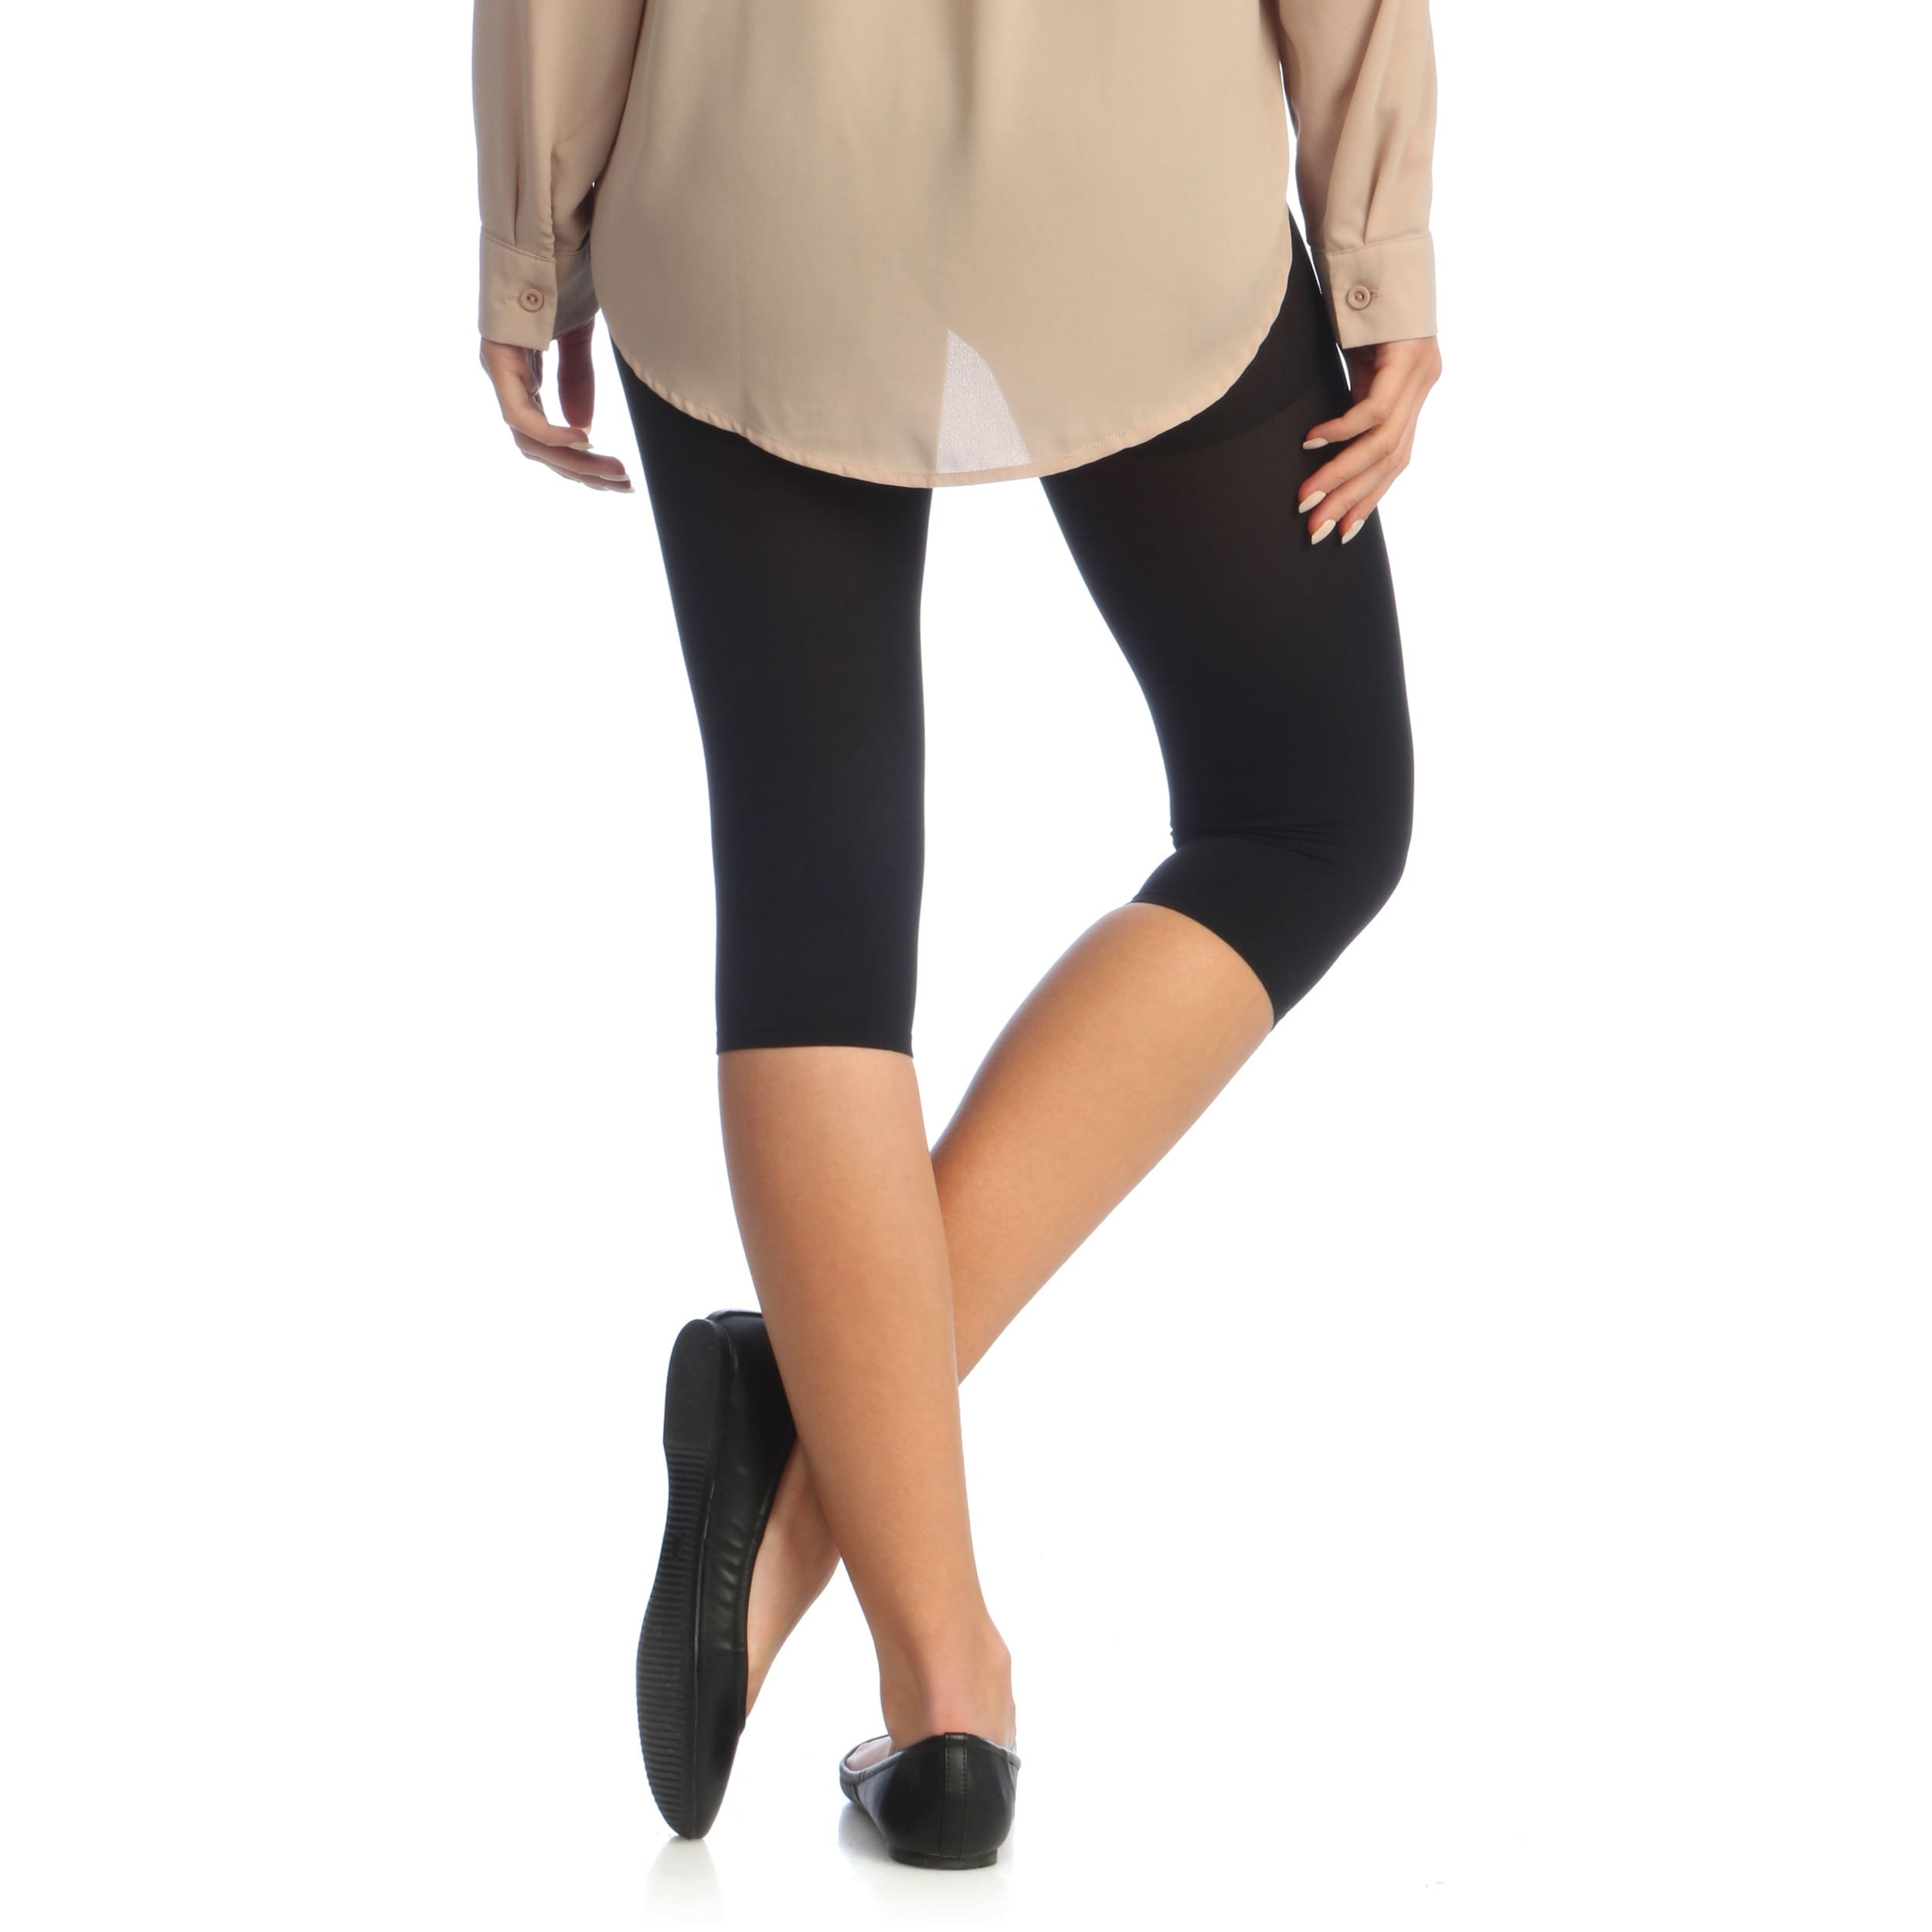 a57ded1136 Shop Co Coon Women s Thermal Slimmer Capris - Free Shipping Today -  Overstock.com - 6403076